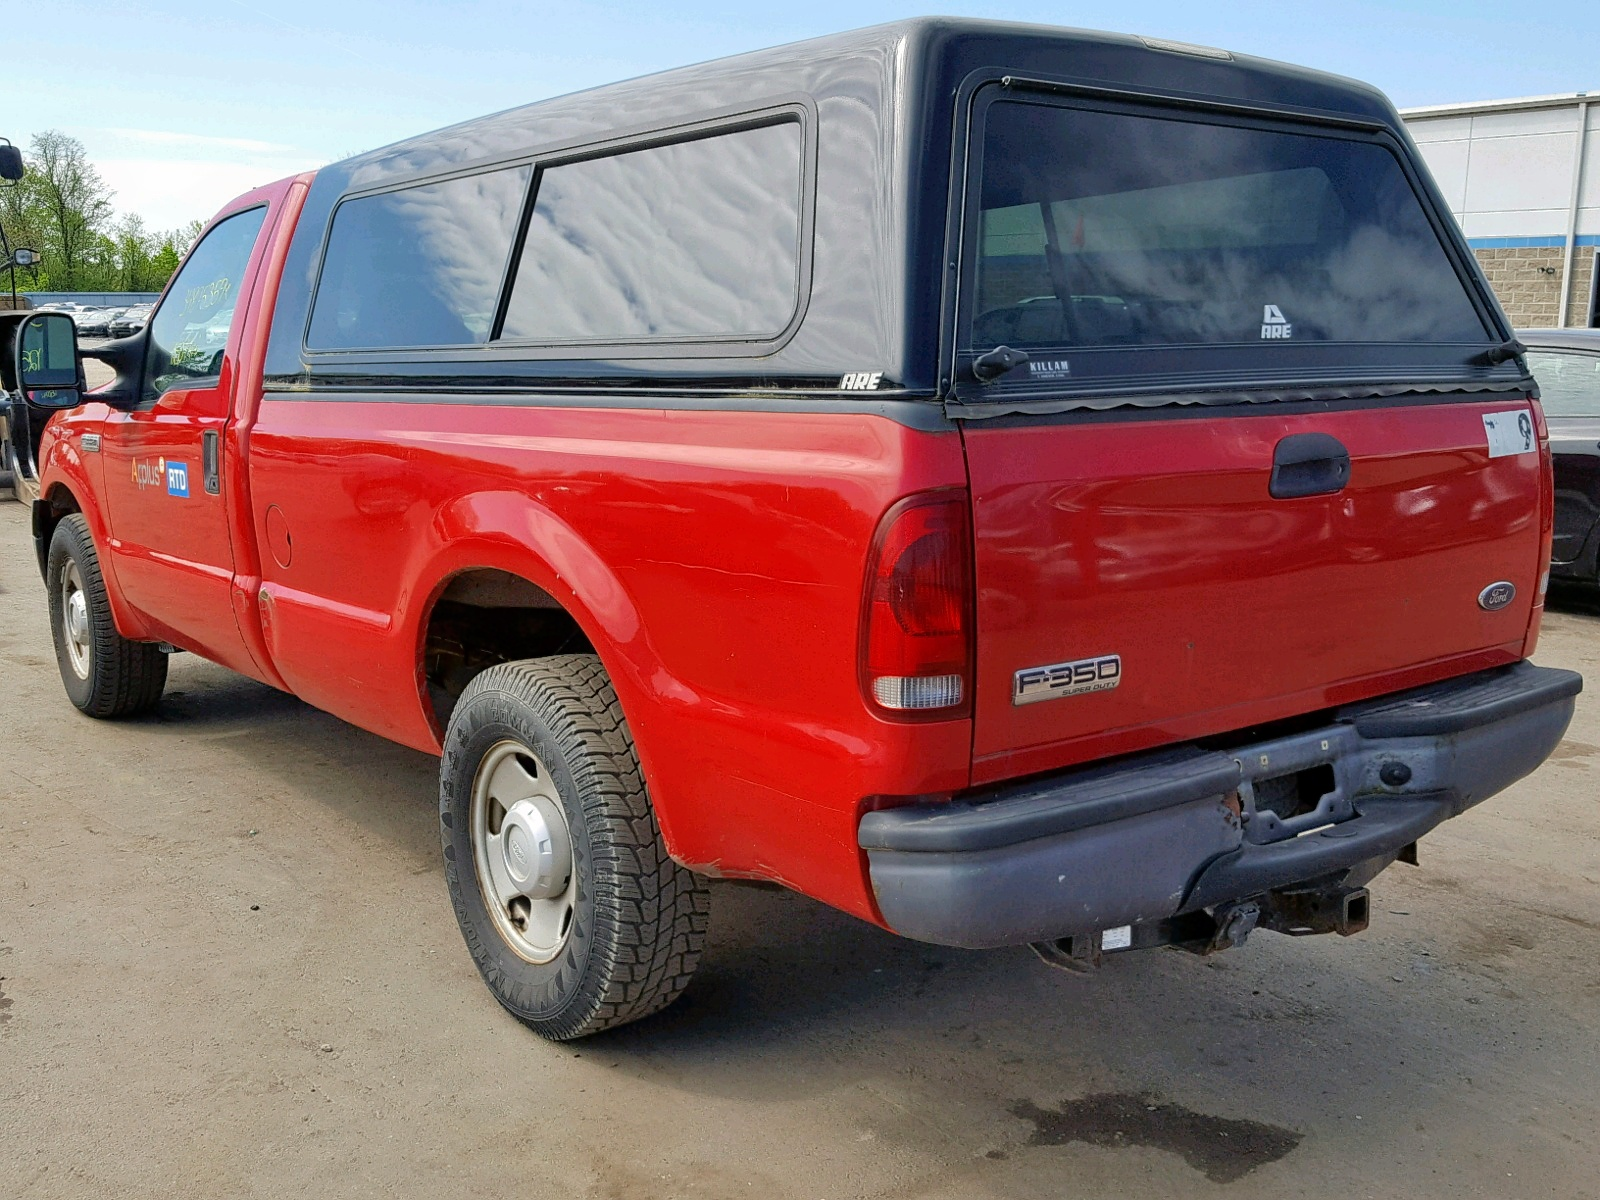 hight resolution of  1ftsf30546ed95705 2006 ford f350 srw s 5 4l angle view 1ftsf30546ed95705